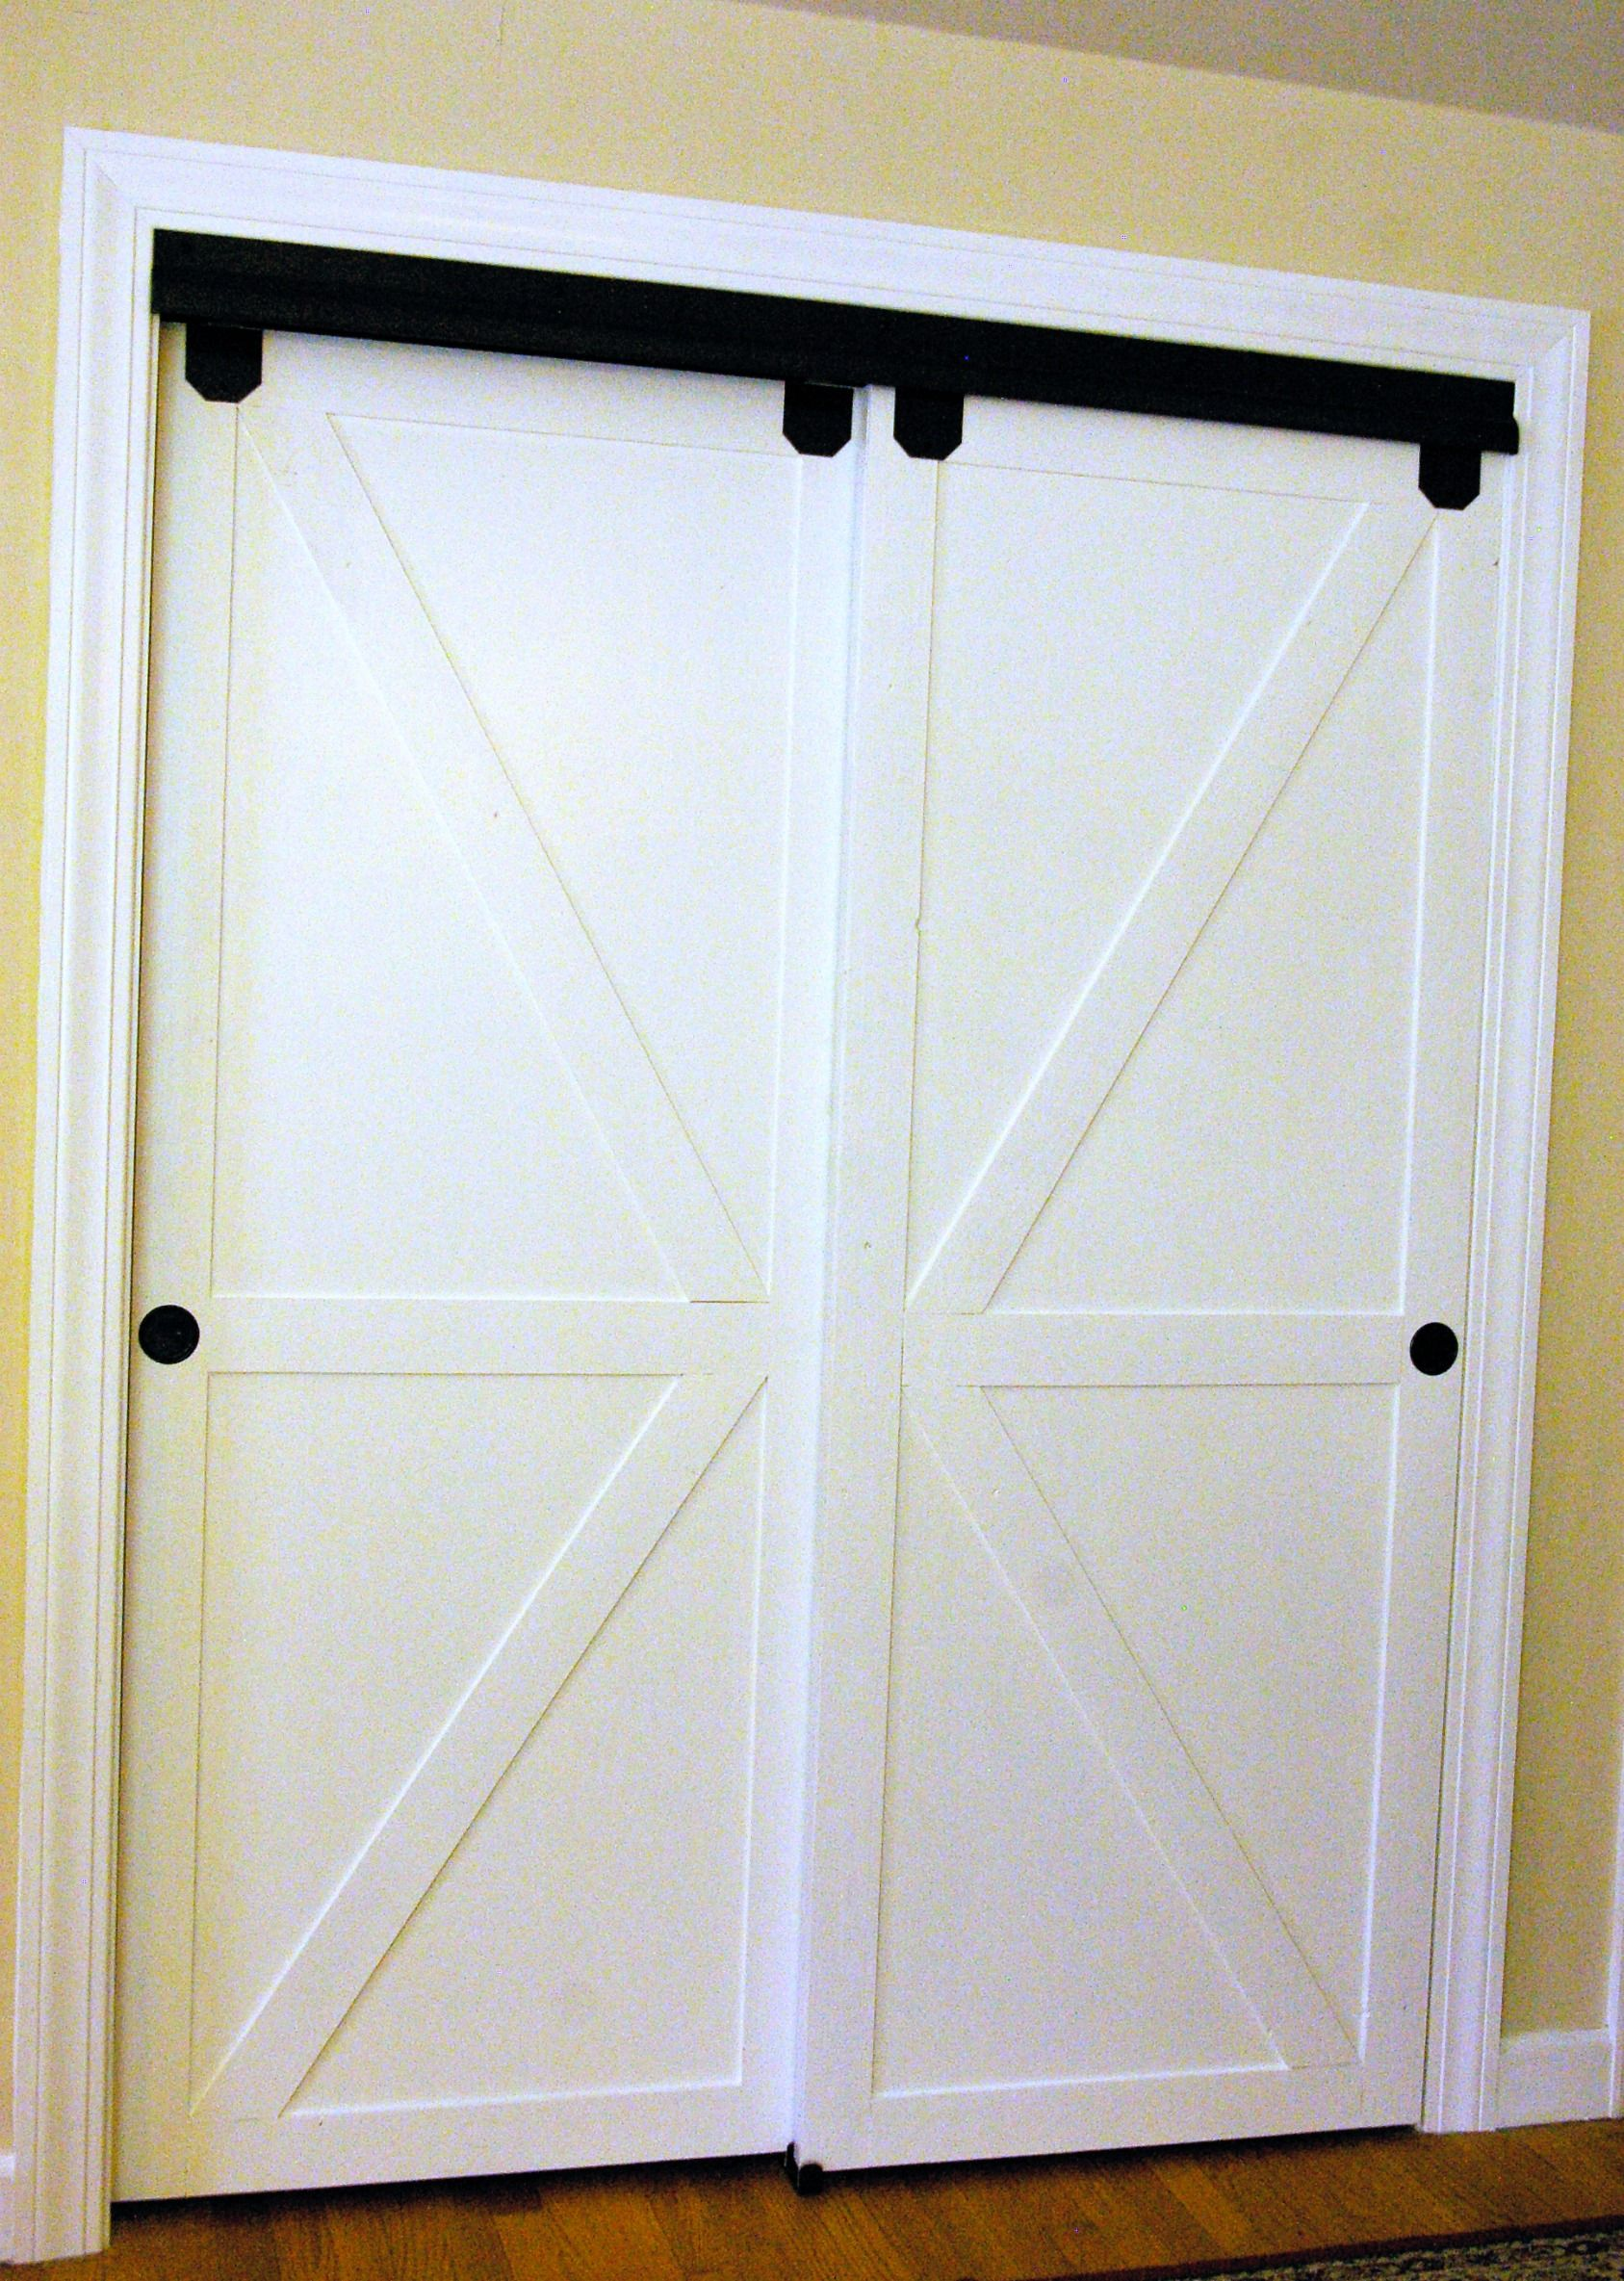 I Love What She Did To Her Closet Doors Make Them Blend In With The Room Slidingclosetdoors Diy Faux Barn On A Sliding